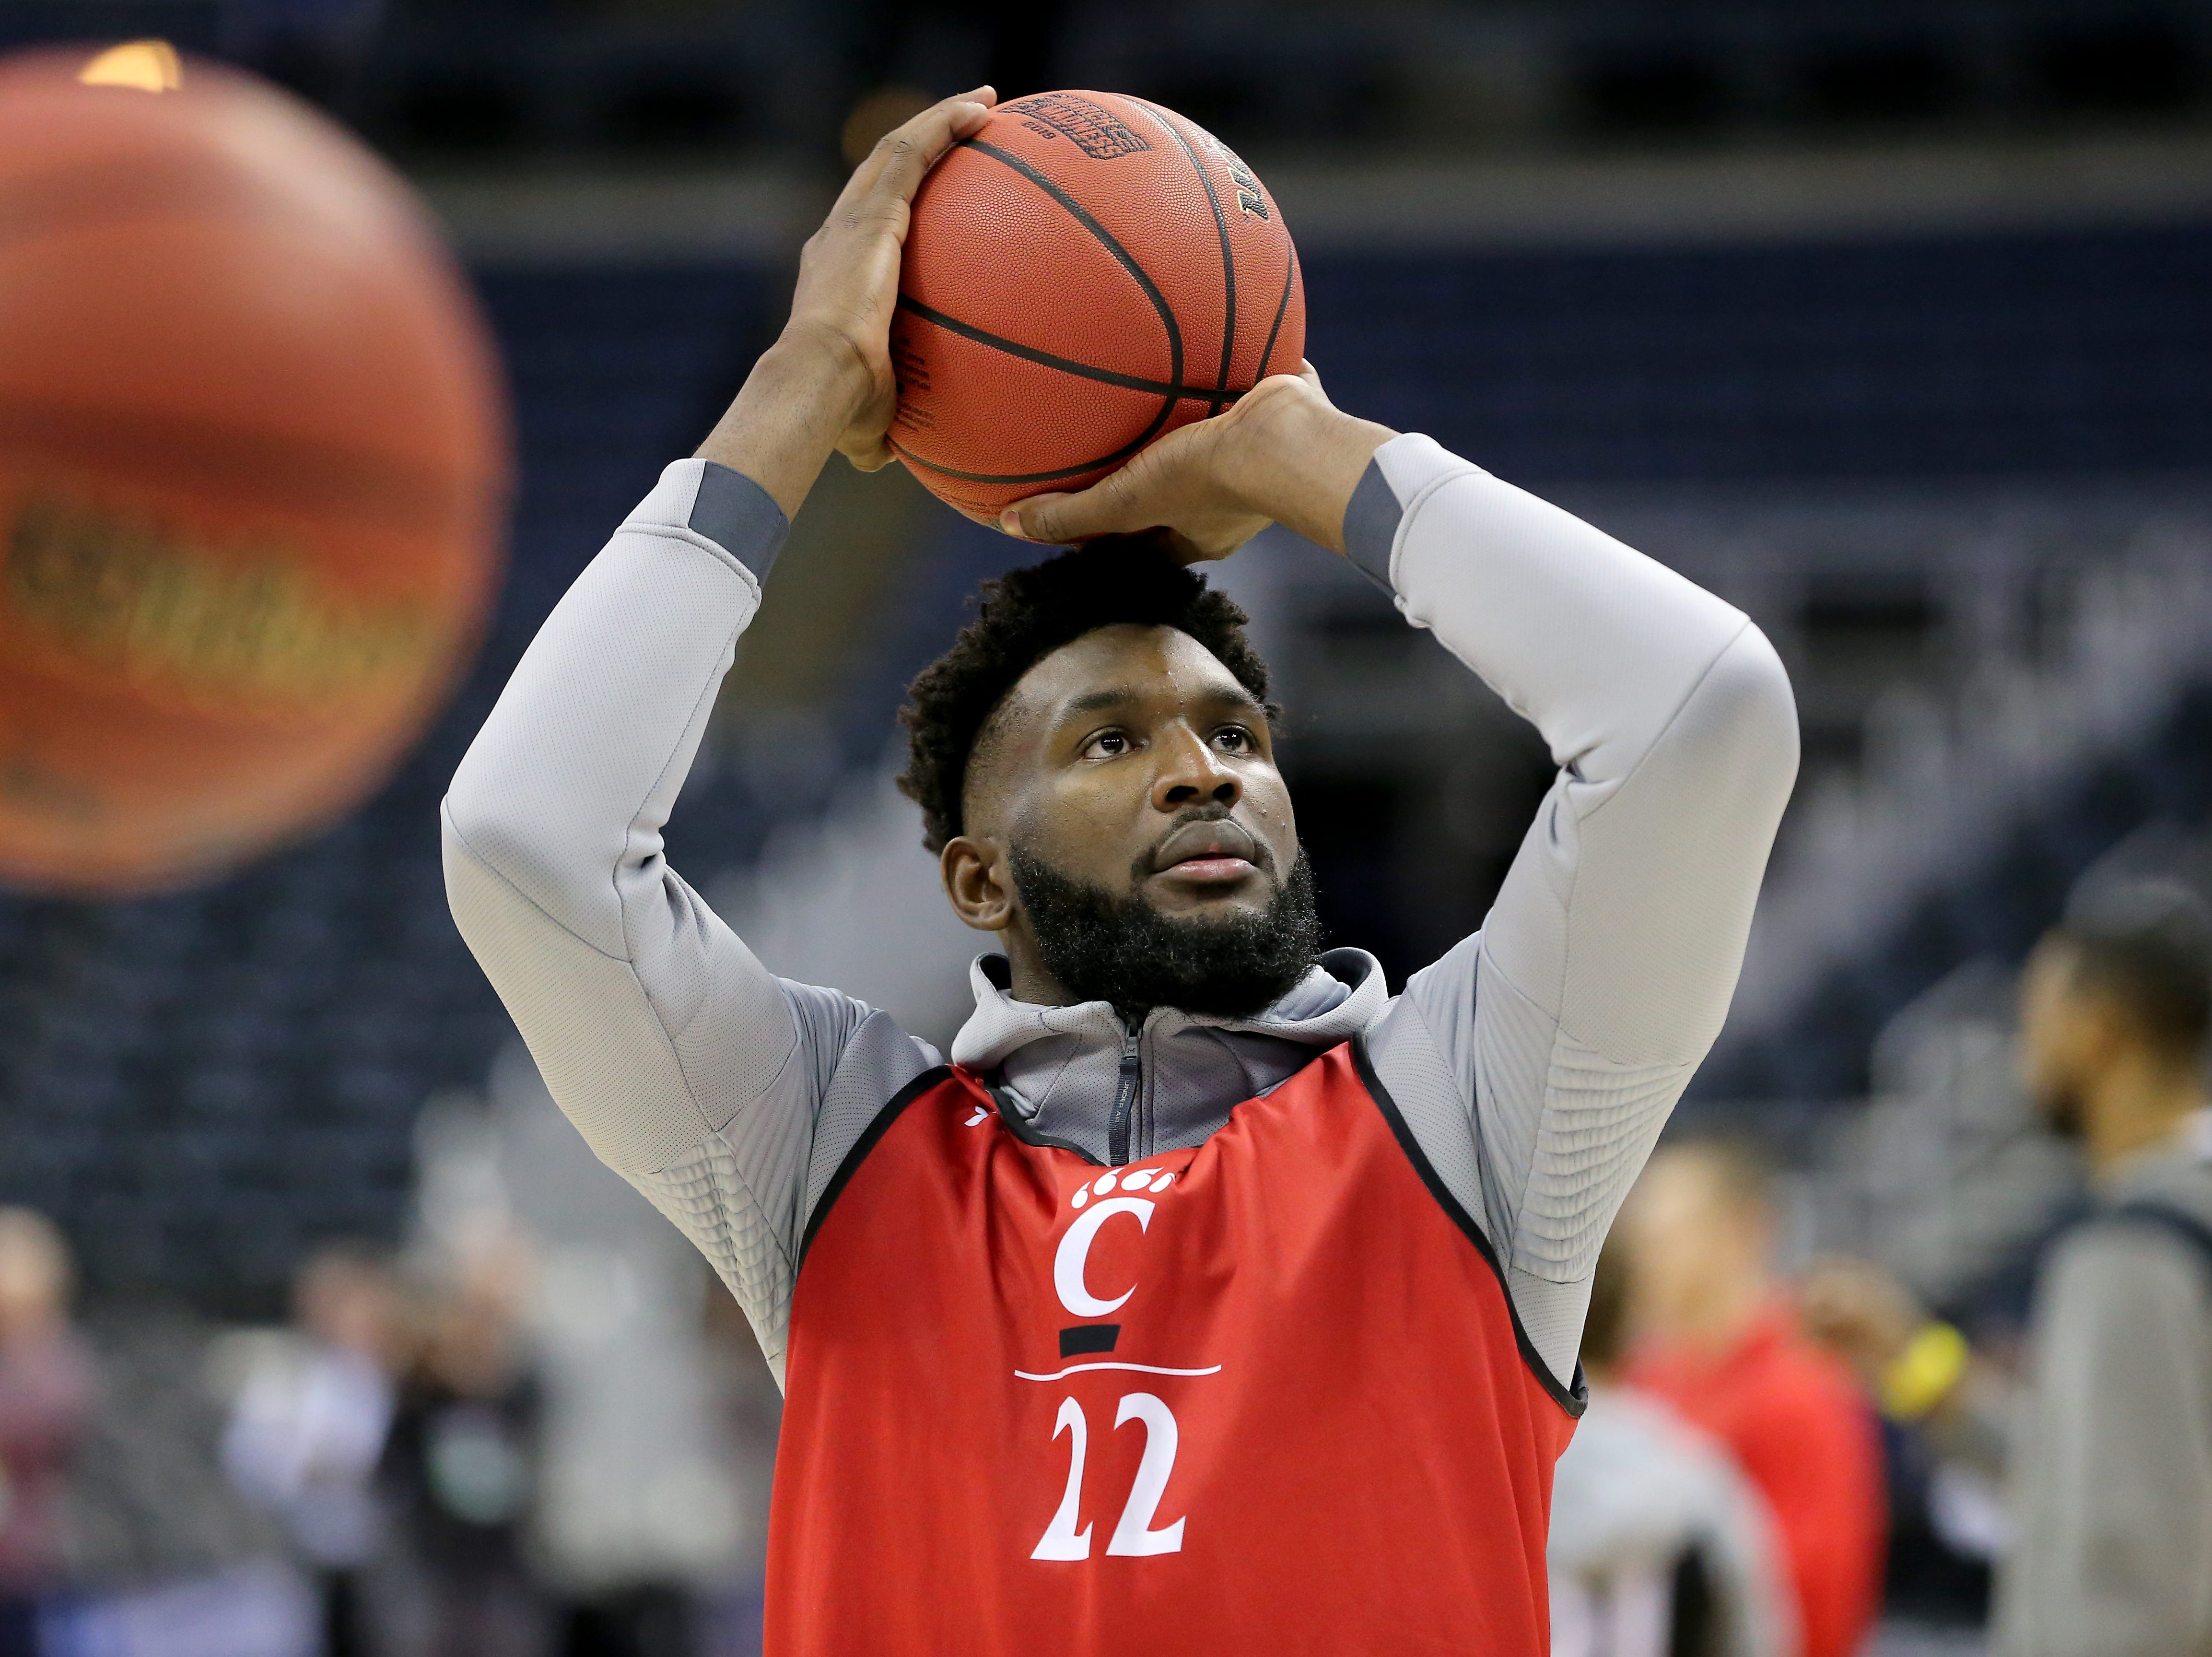 Cincinnati Bearcats forward Eliel Nsoseme (22) takes a shot during open practice, Thursday, March 21, 2019, at Nationwide Arena in Columbus, Ohio.